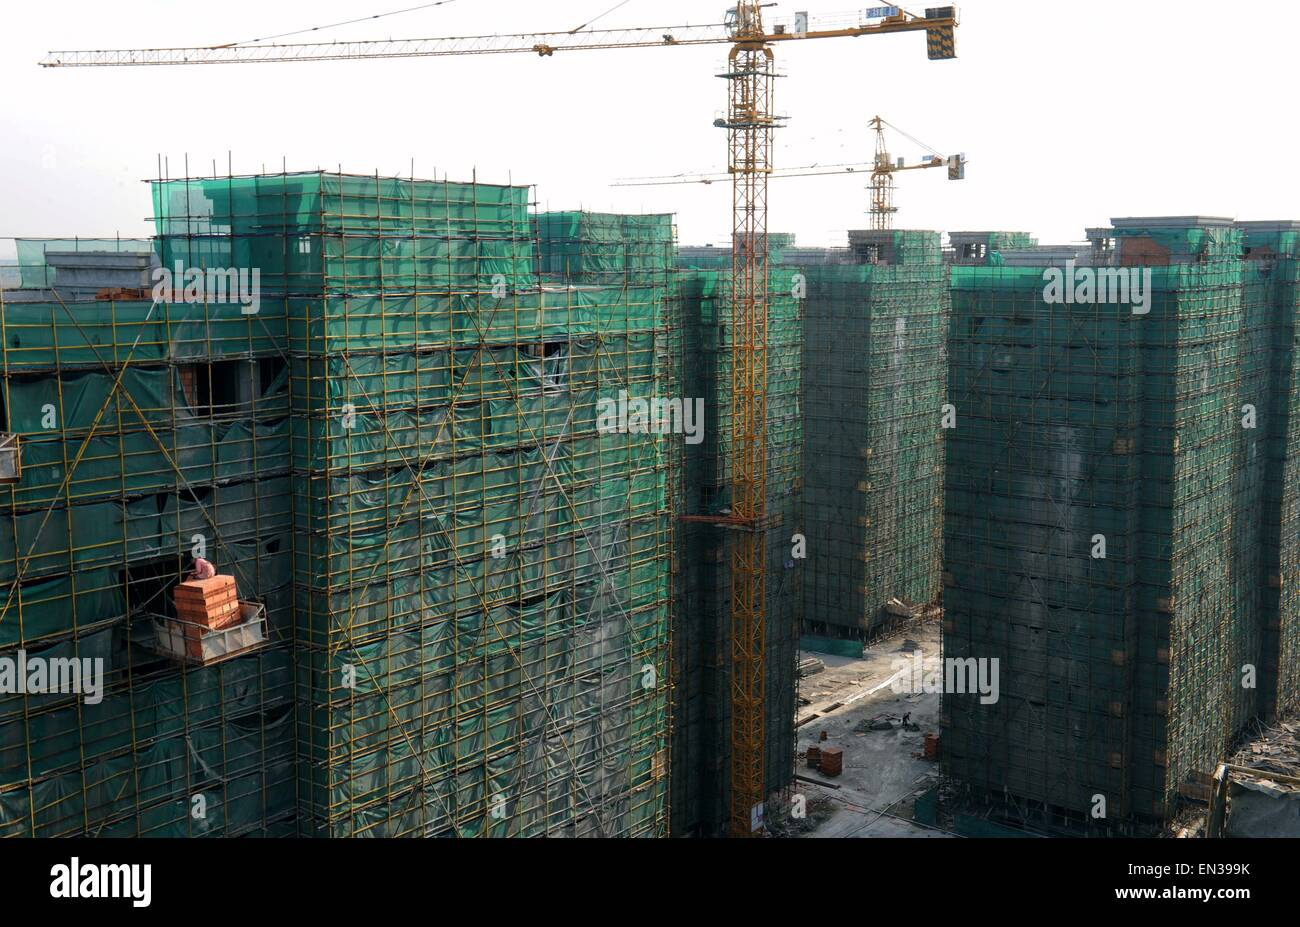 Hangzhou. 22nd Apr, 2015. Photo taken on April 22, 2015 shows a construction site of low-rent and public rental Stock Photo